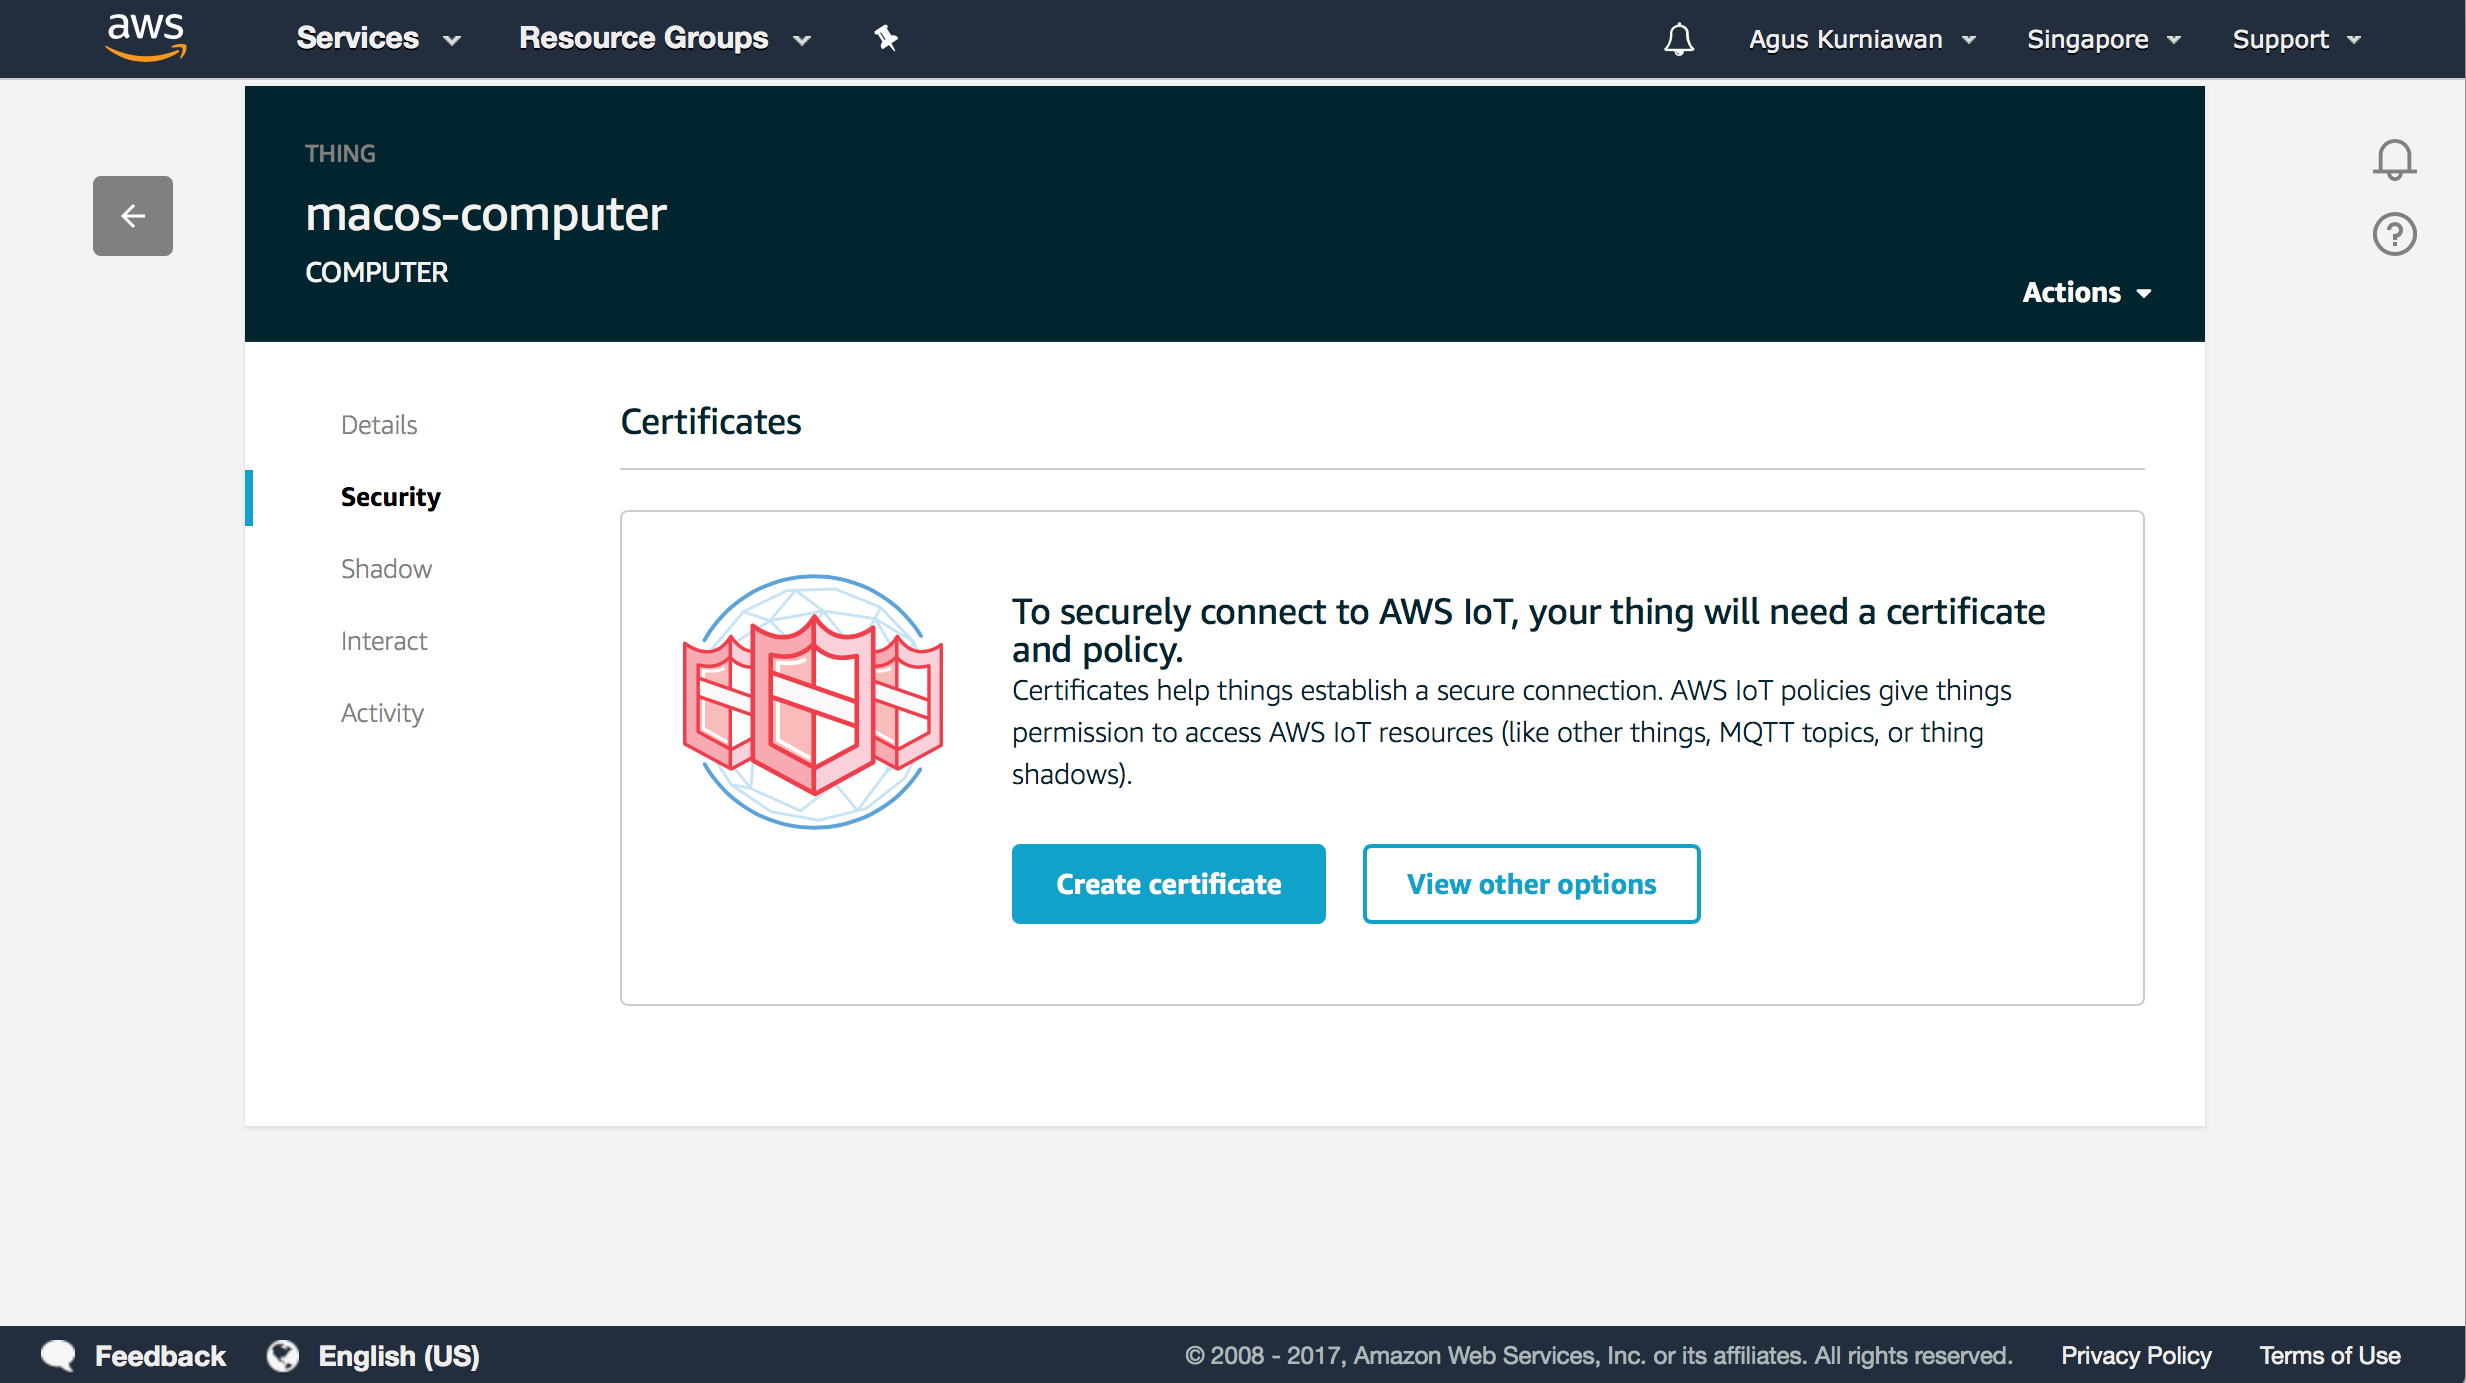 Setting up AWS IoT for your IoT project - Learning AWS IoT